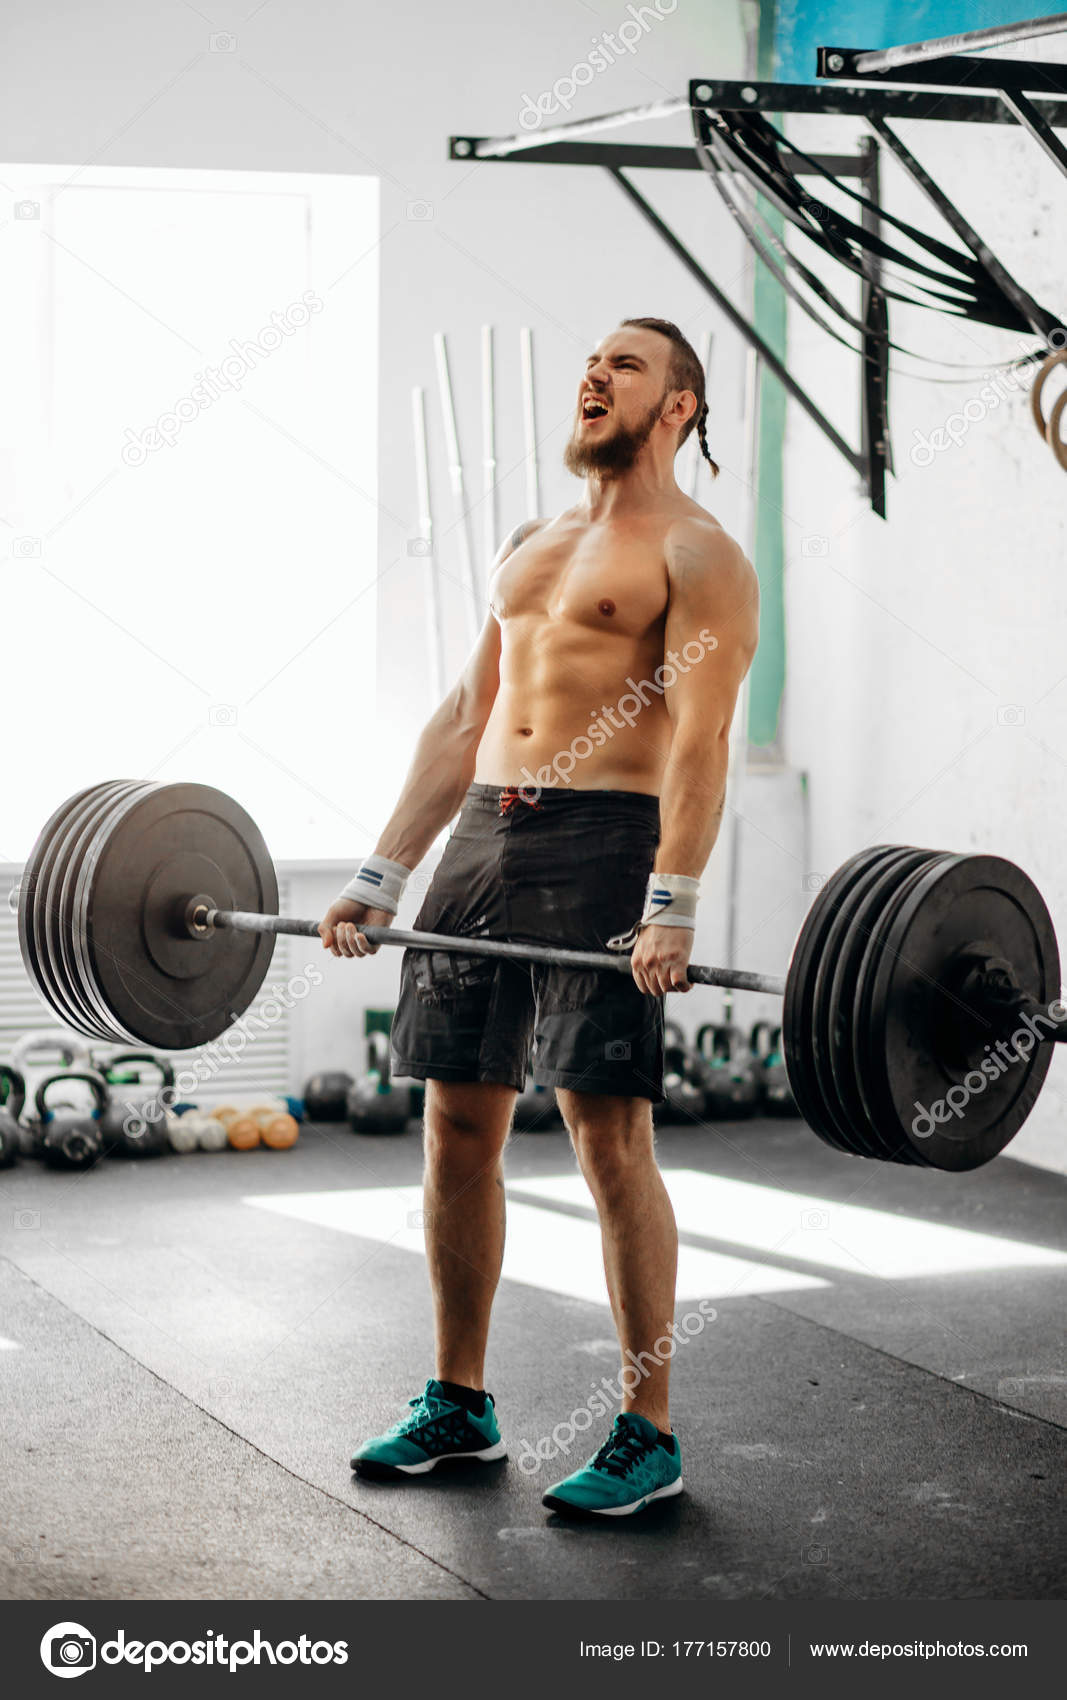 72b2323d2a5e Man lifting weights. muscular man workout in gym doing exercises with  barbell — Stock Photo